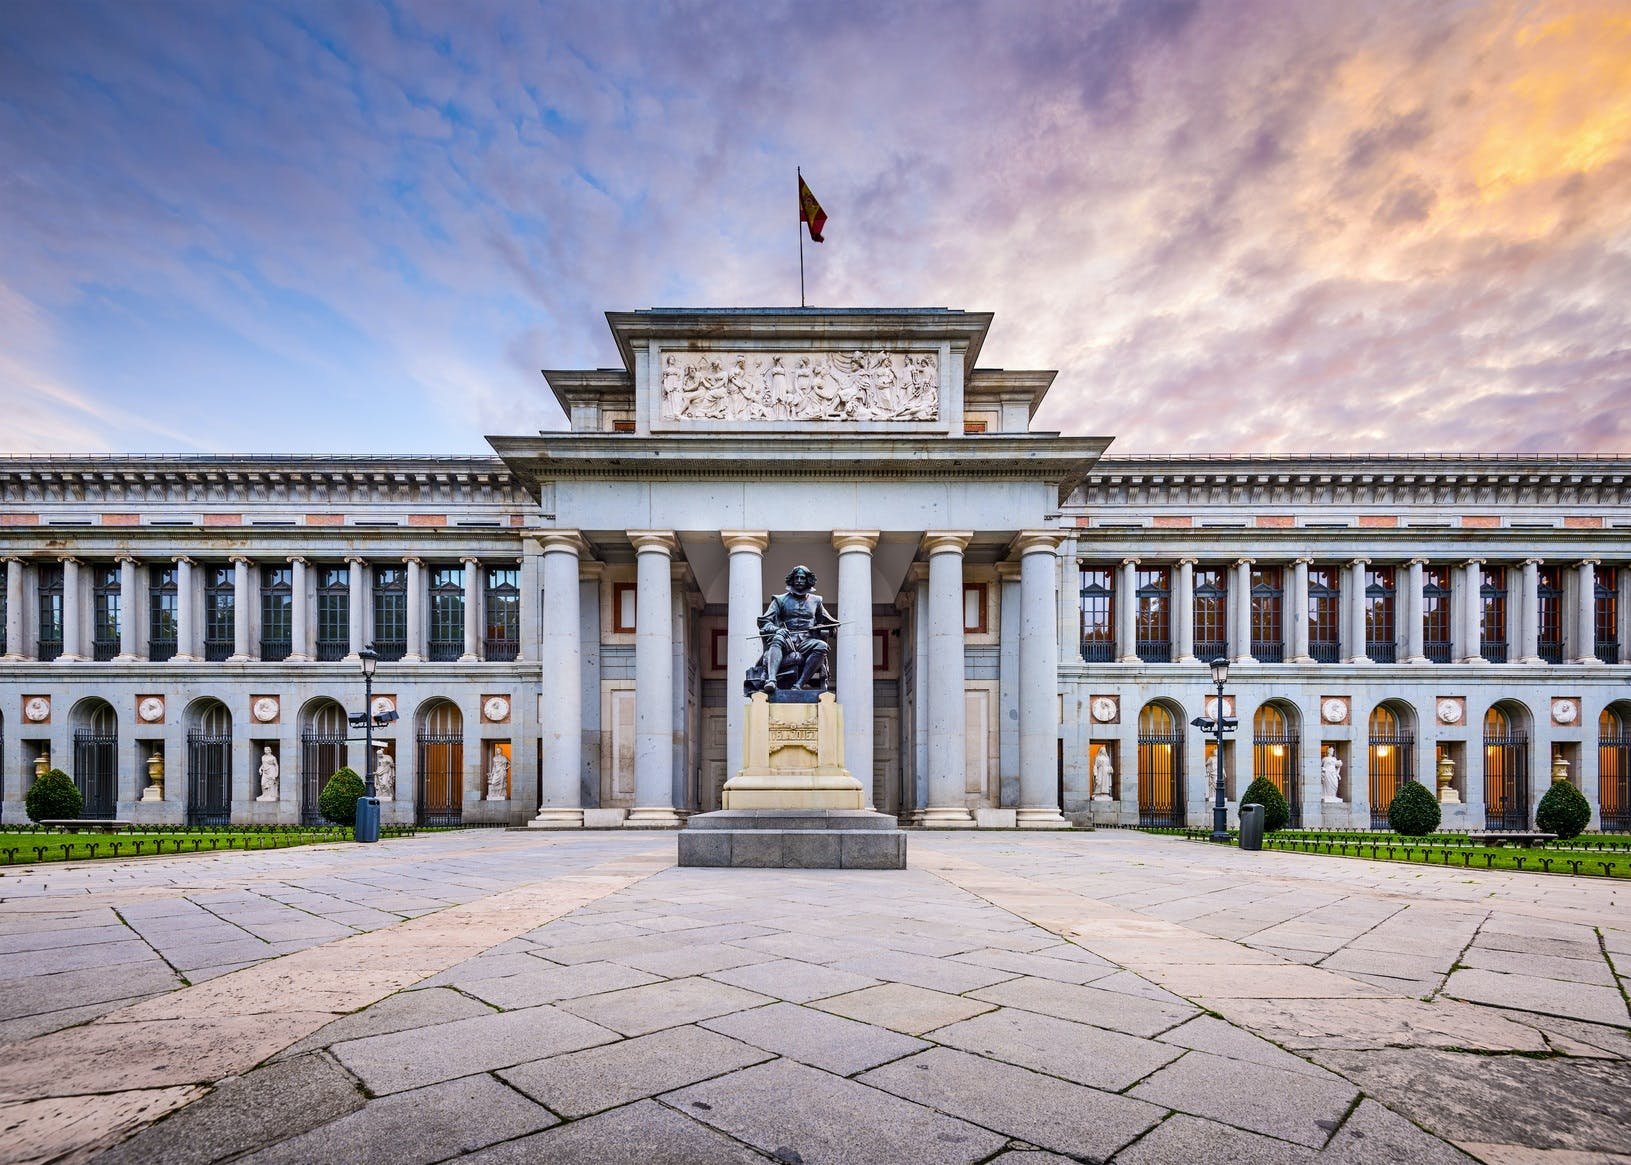 The best of Prado, Reina Sofía and Thyssen-Bornemisza museums guided tour with skip-the-line tickets